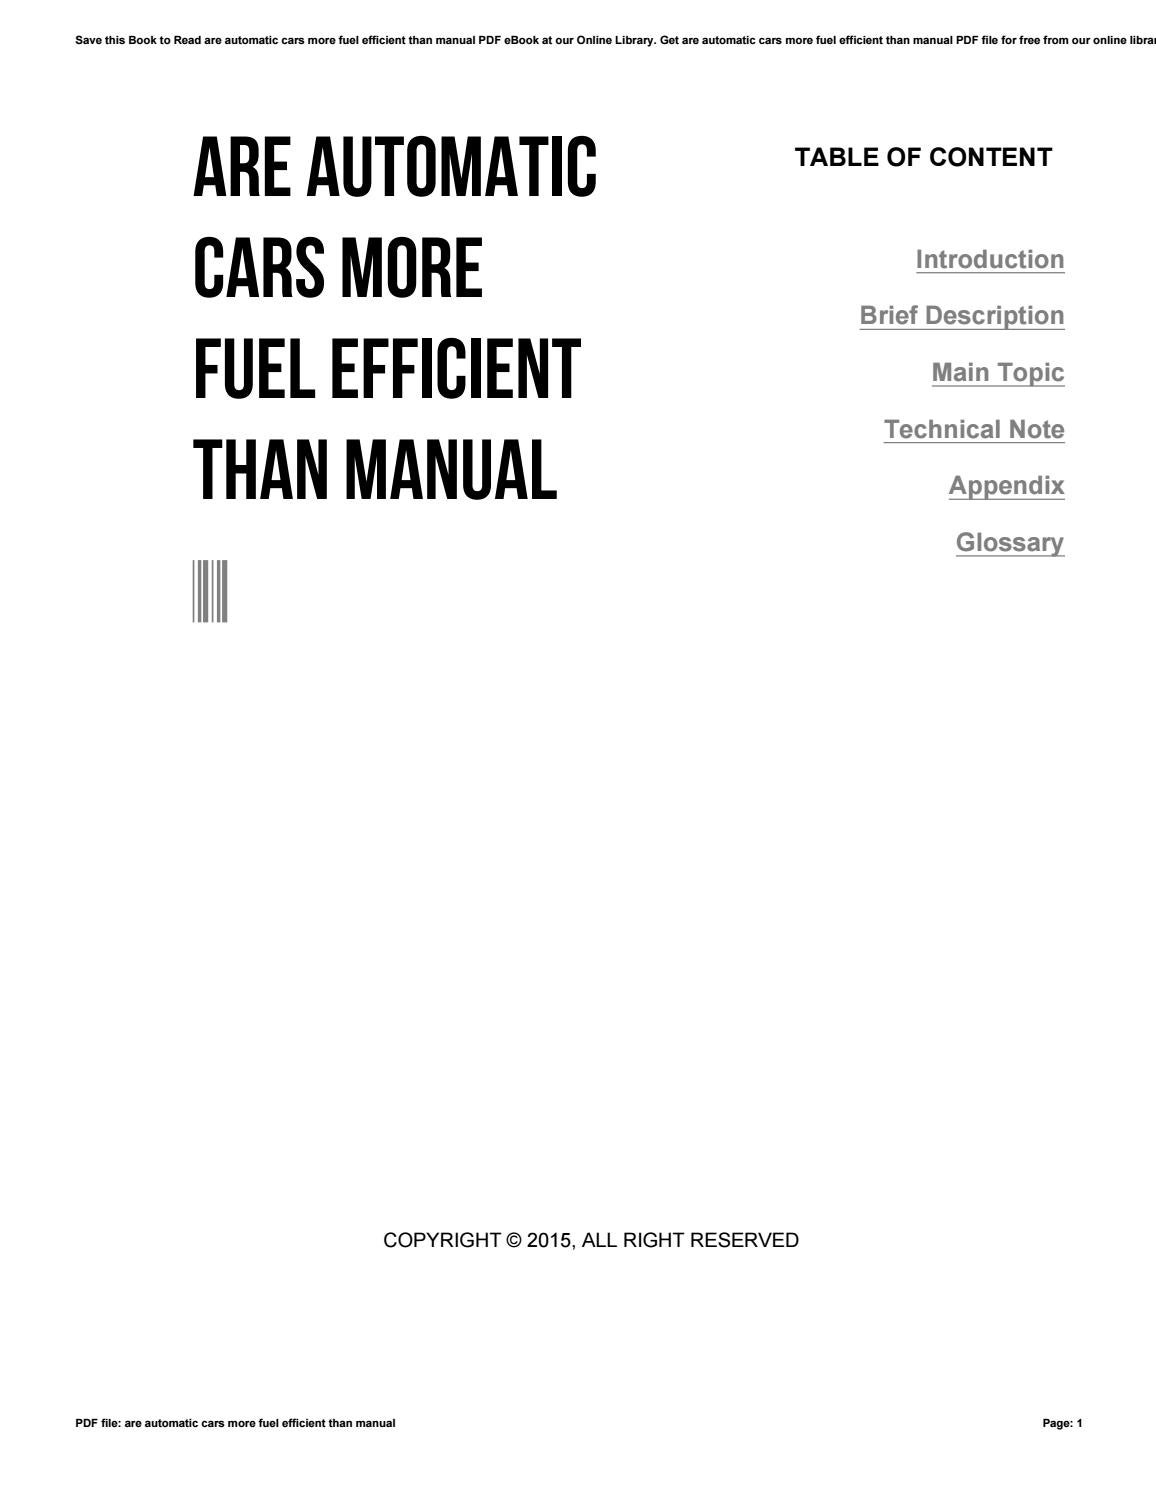 Are automatic cars more fuel efficient than manual by